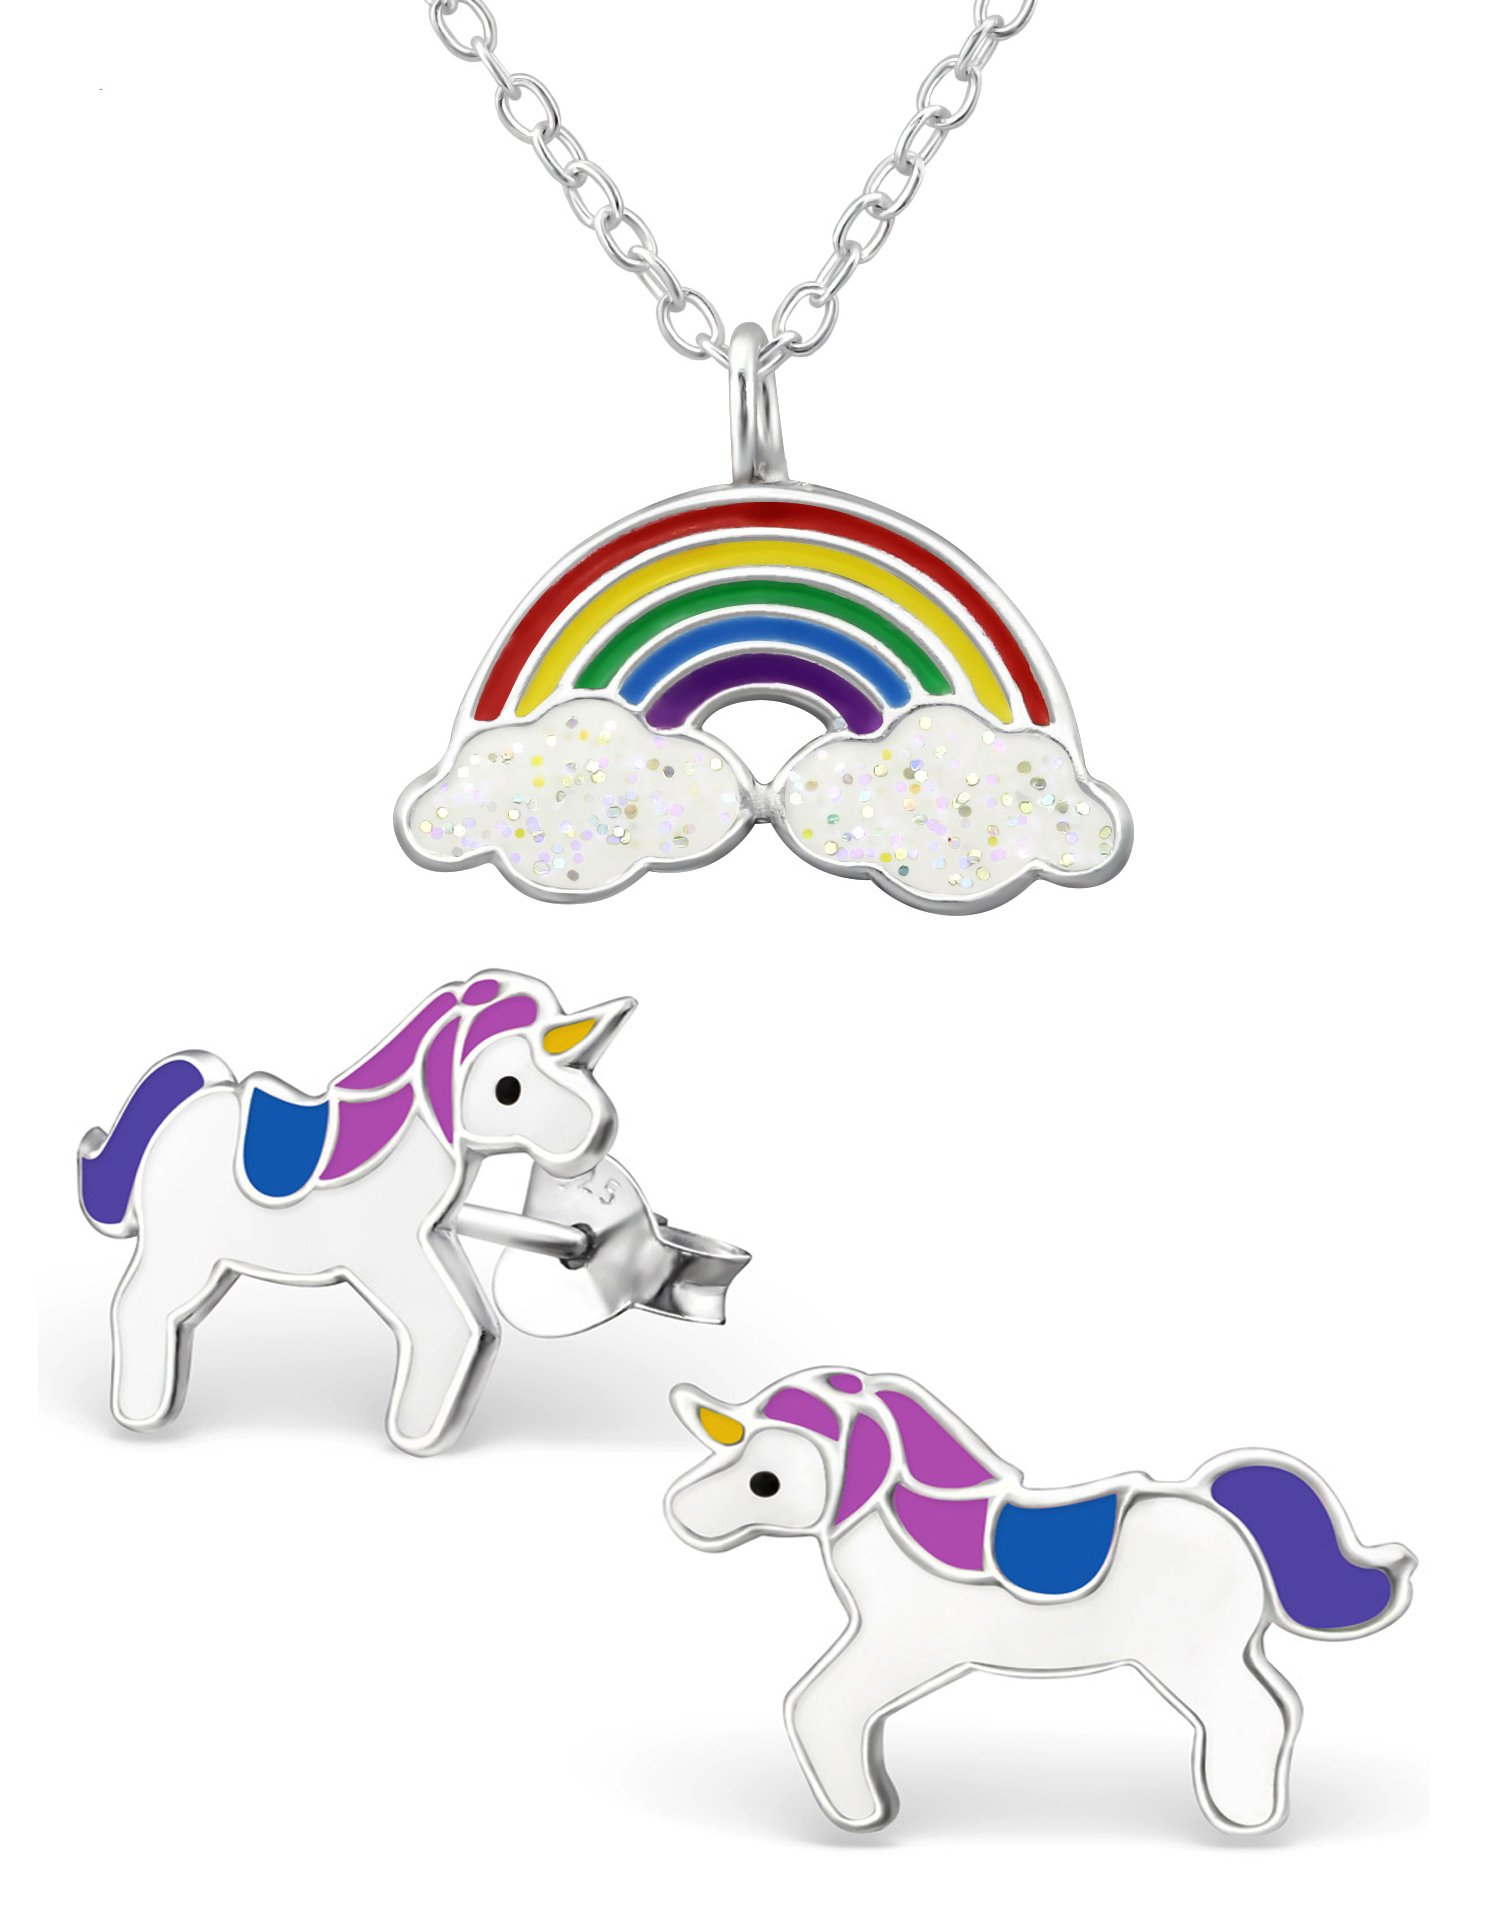 Best Wing Jewelry .925 Sterling Silver ''Rainbow and Unicorn'' Set Necklace and Stud Earrings for Children and Teens by Best Wing Children's Earrings (Image #1)